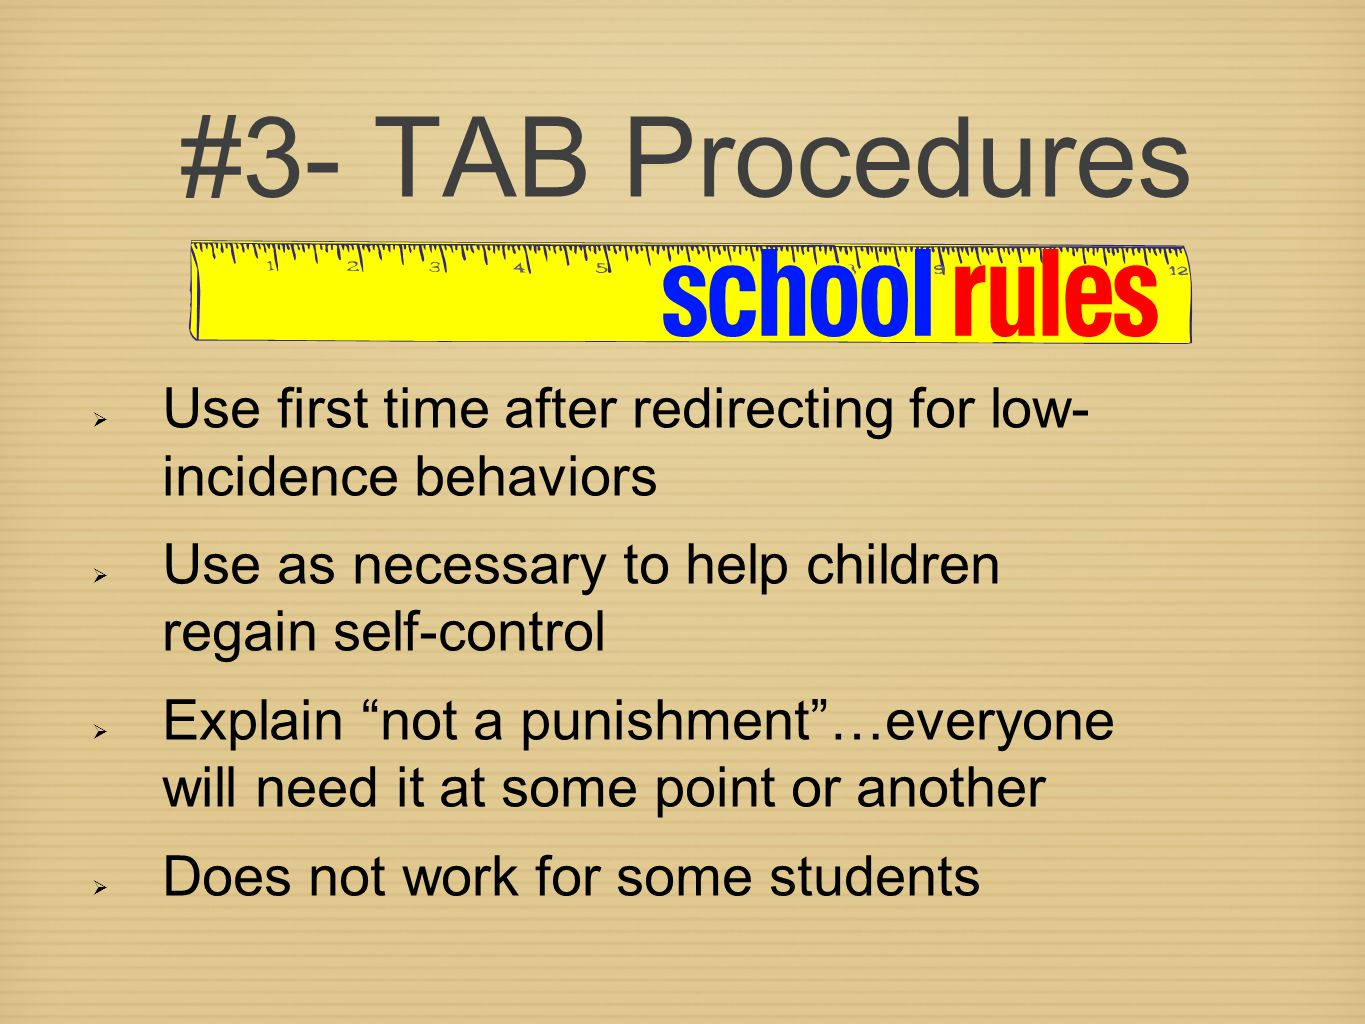 #3- TAB Procedures  Use first time after redirecting for low- incidence behaviors  Use as necessary to help children regain self-control  Explain not a punishment …everyone will need it at some point or another  Does not work for some students